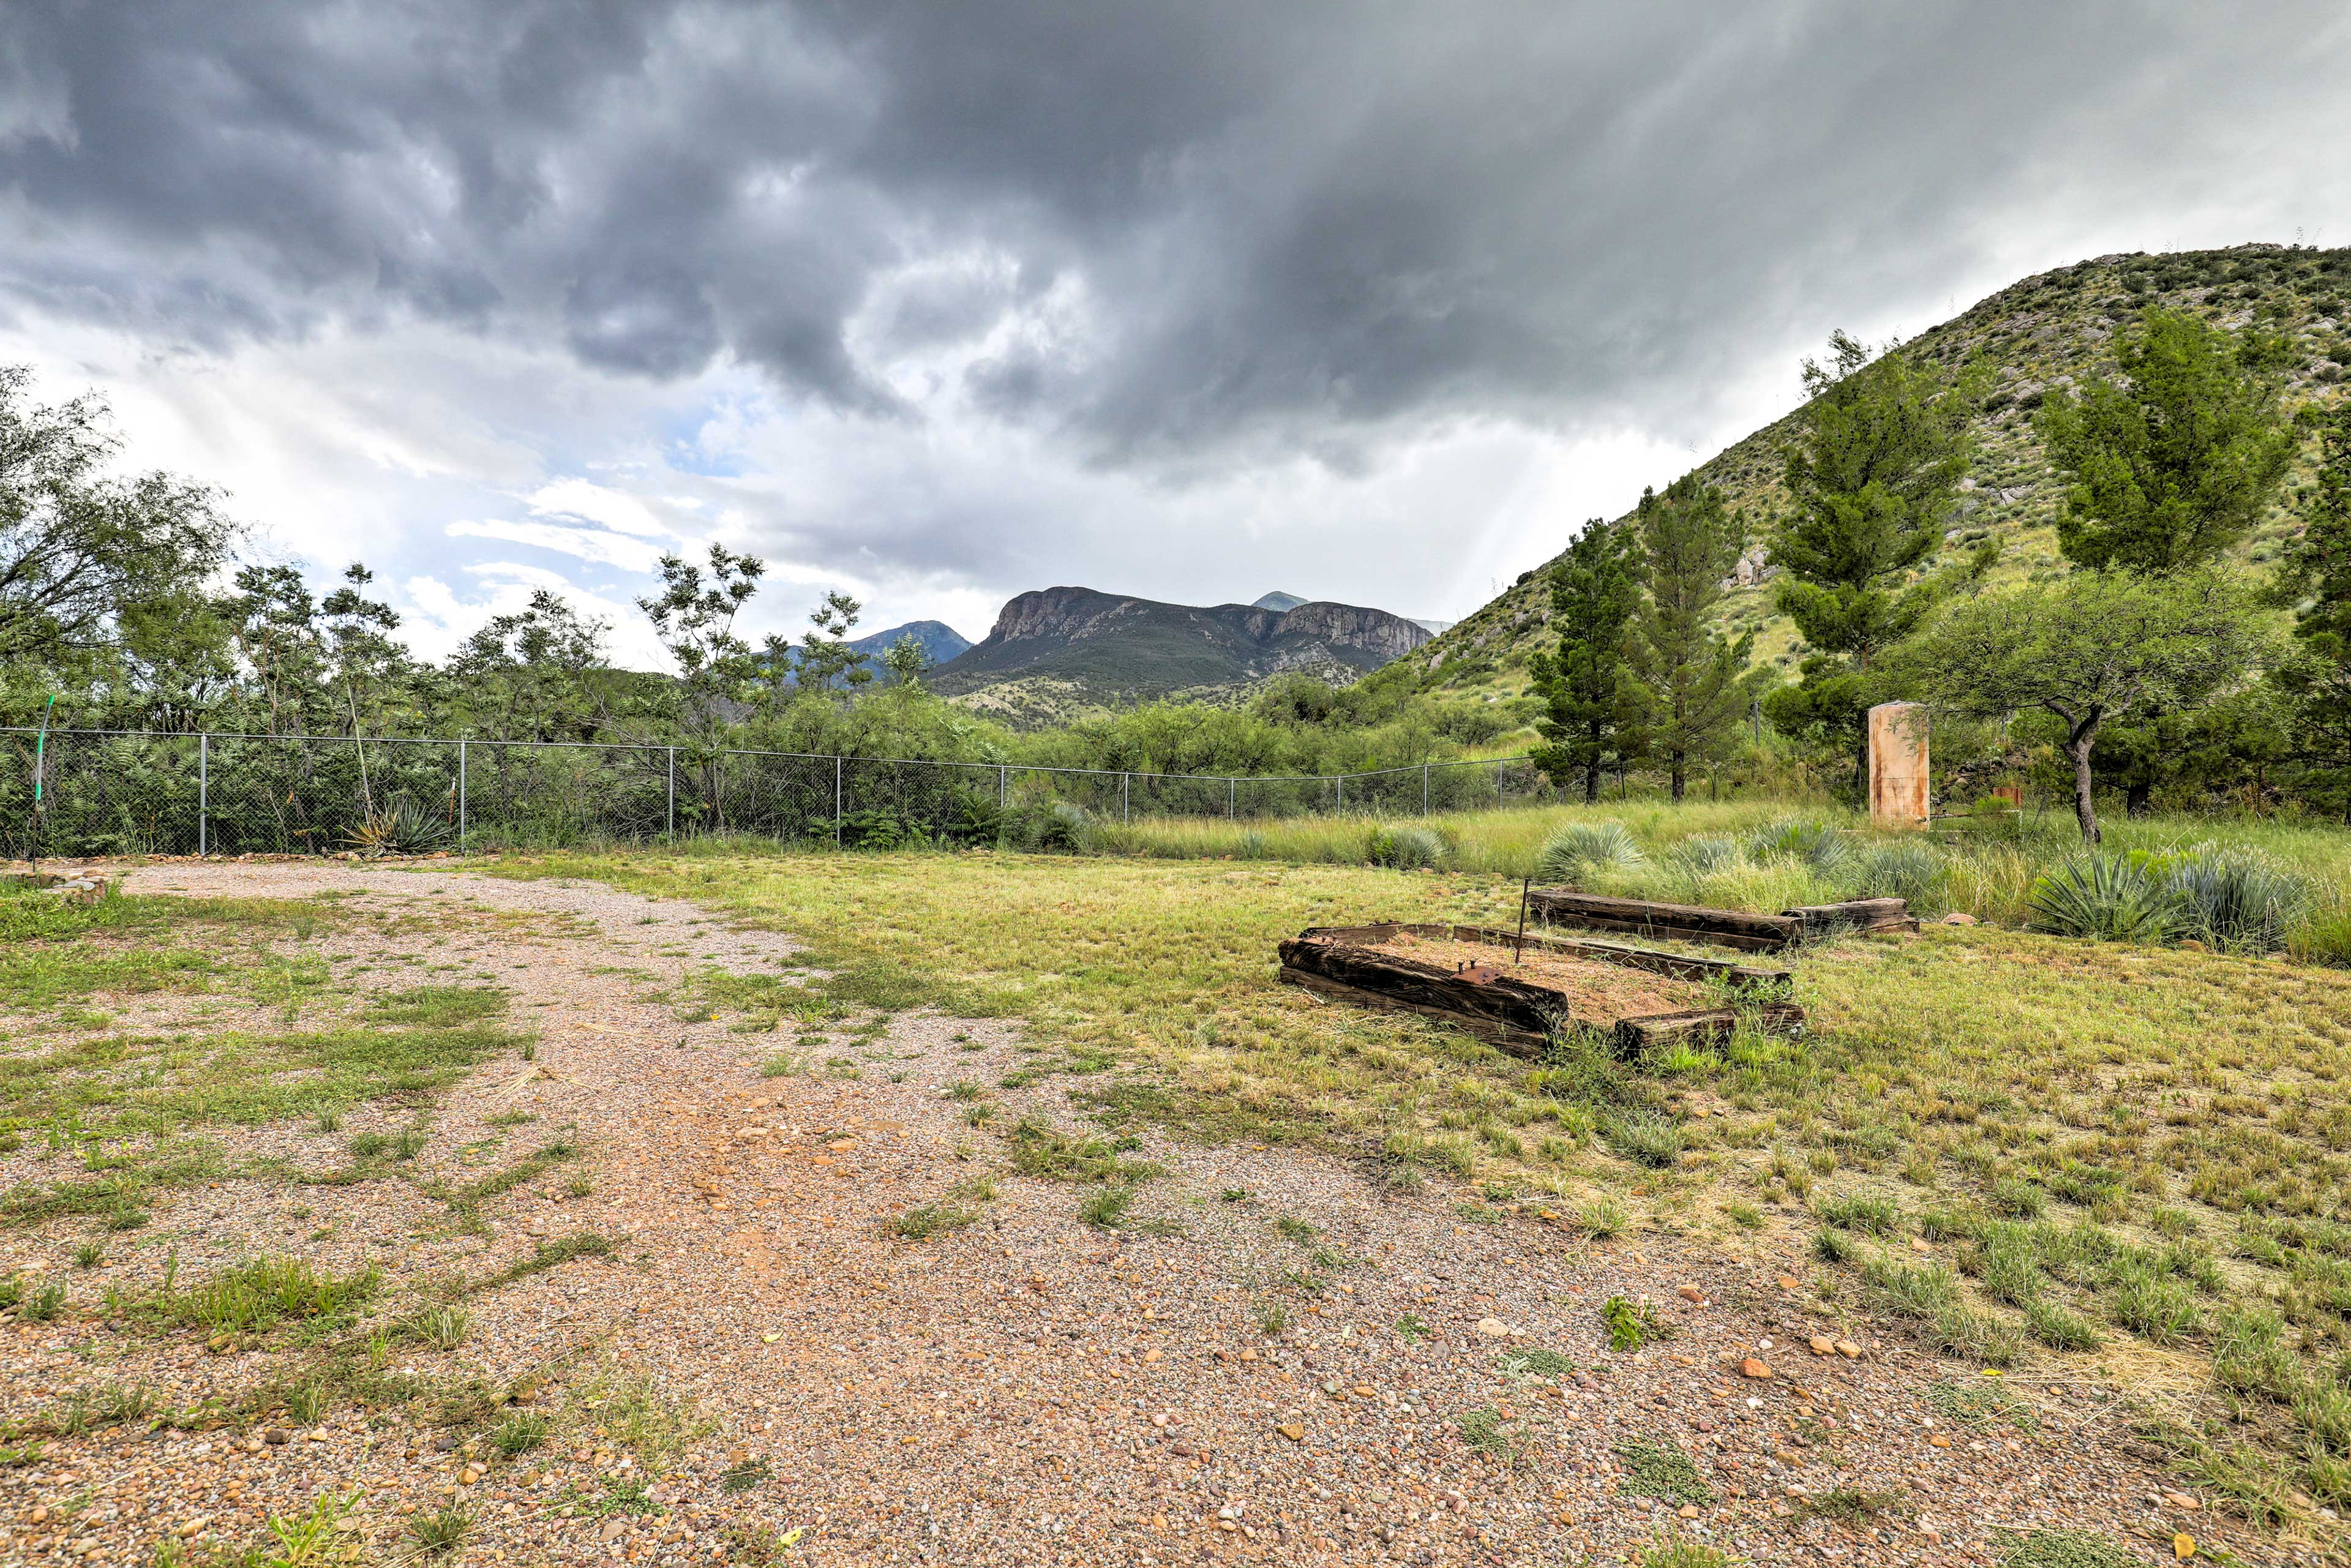 Immerse yourself in this serene and remote landscape at the ranch.